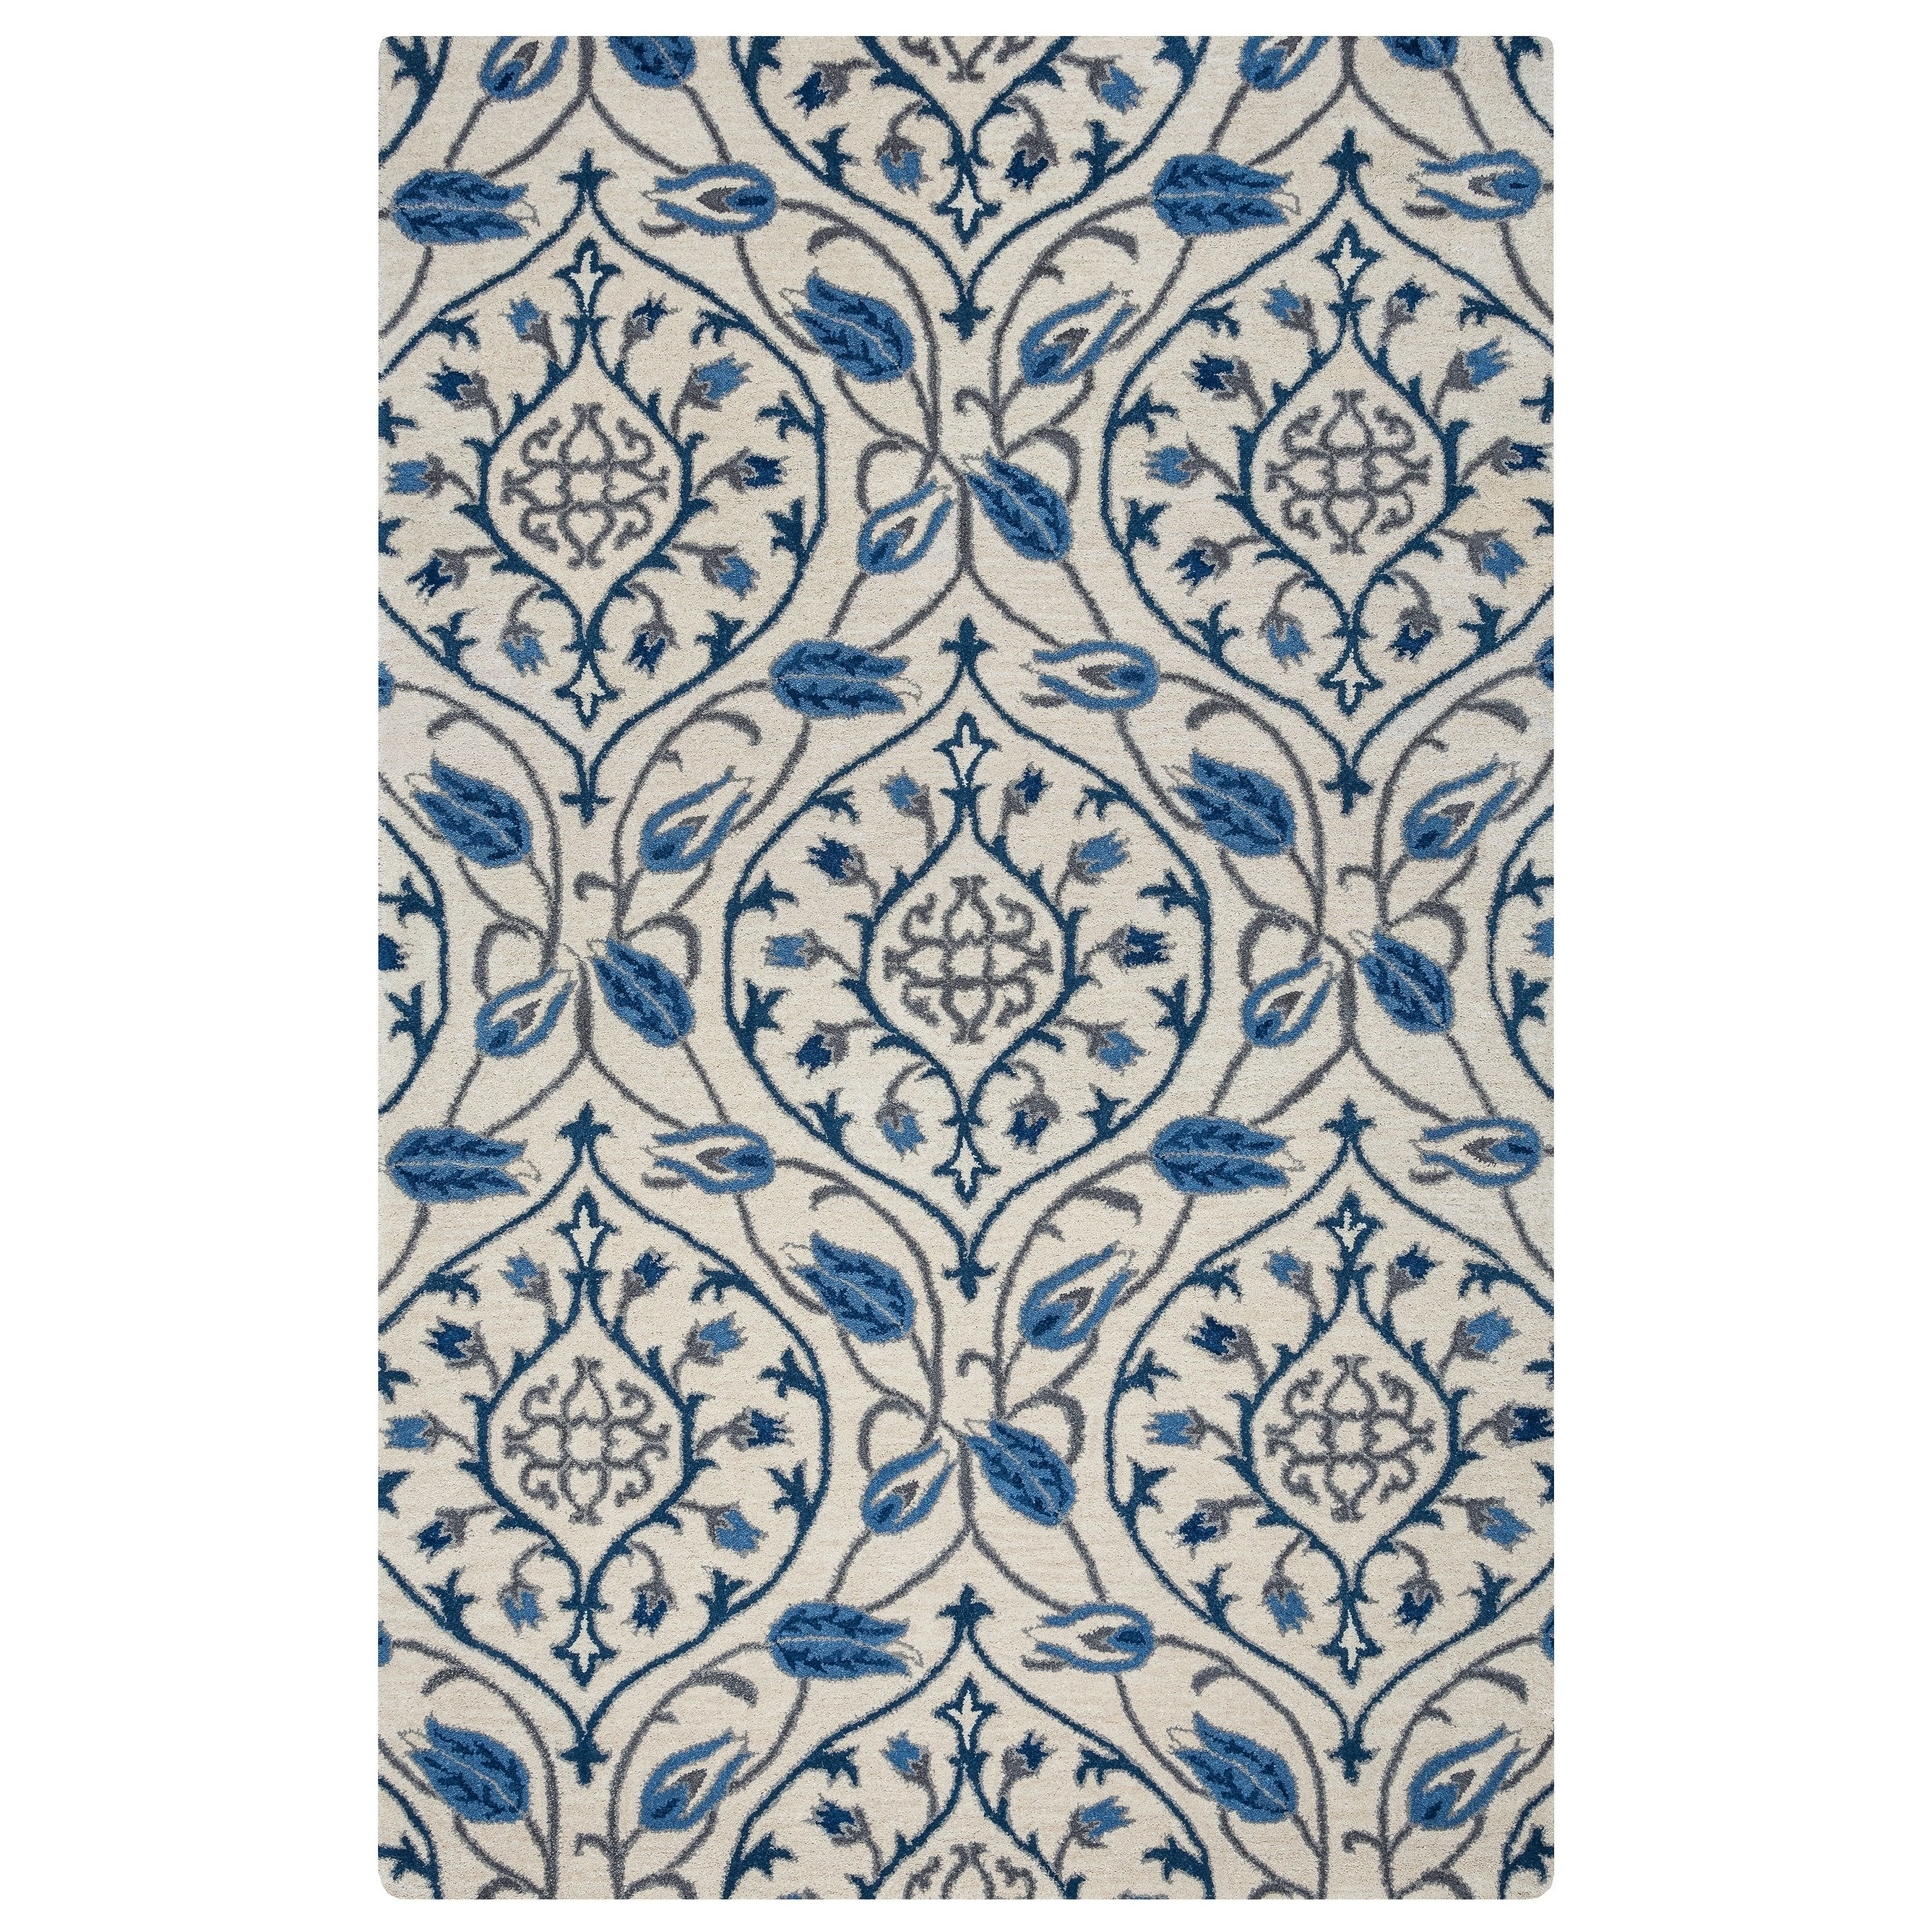 Rizzy Home Valintino Collection VN9522 Area Rug (9' x 12') (VN9522-9'x12'), Multi, Size 9' x 12' (Cotton, Ornamental)